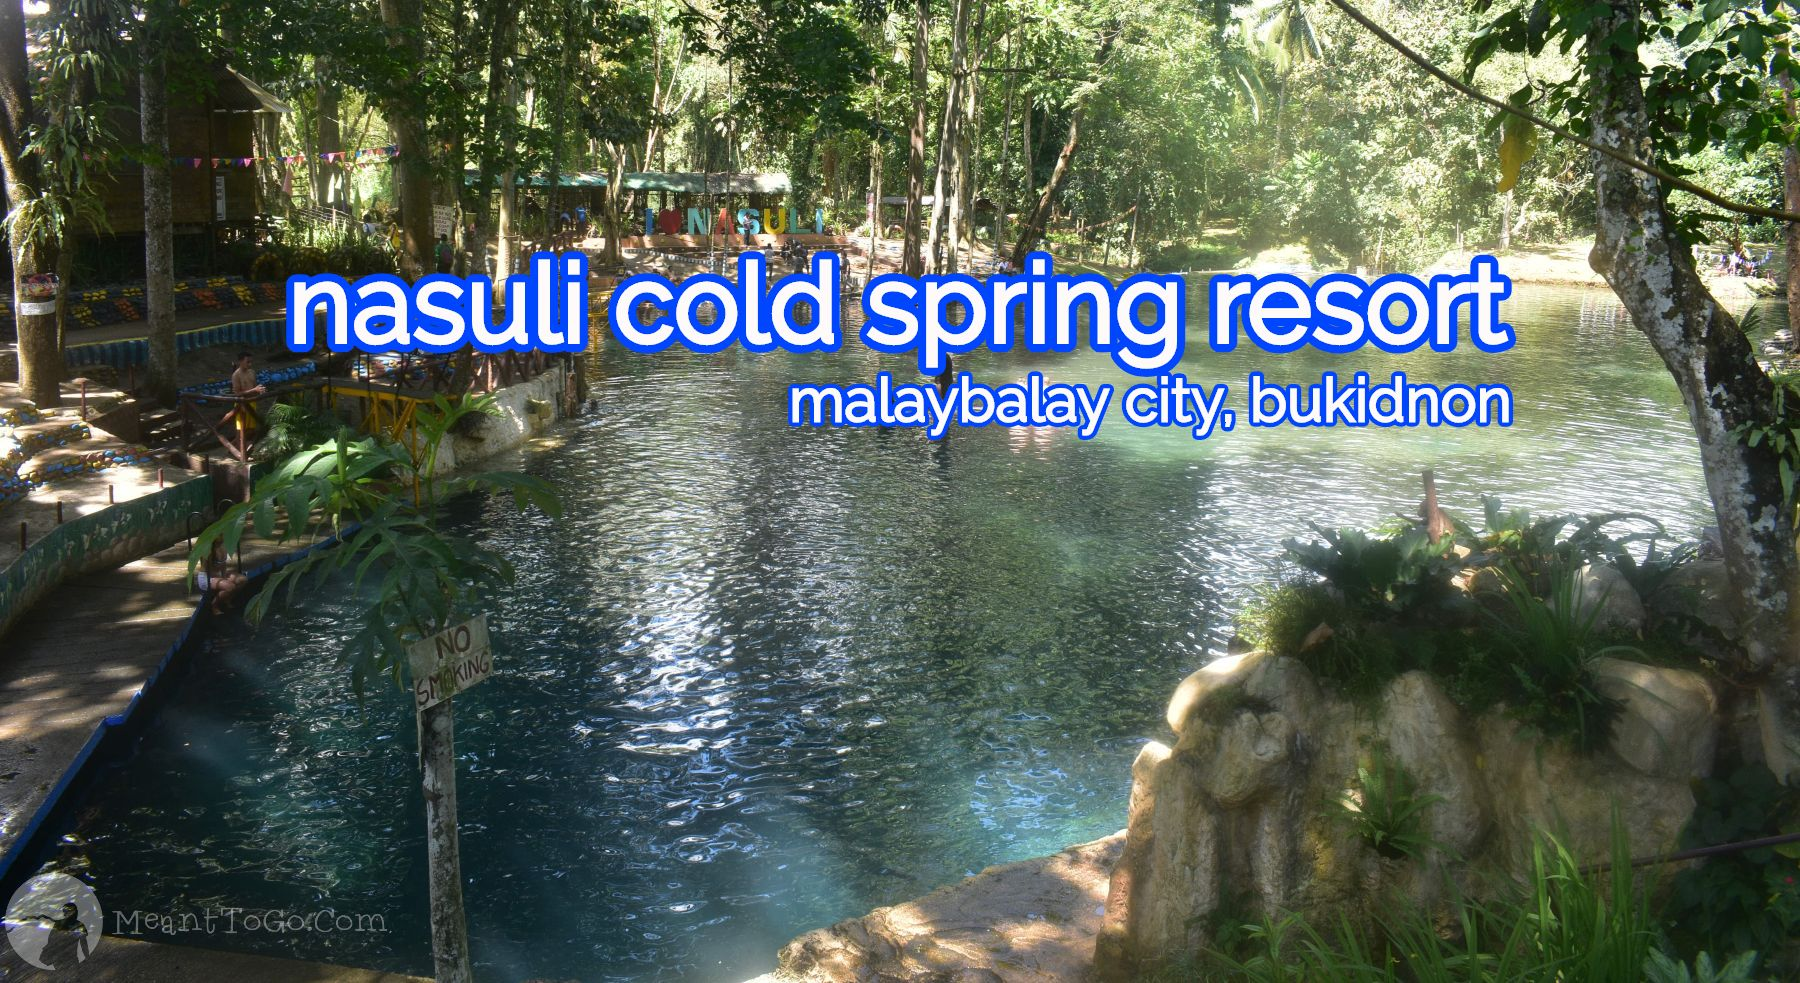 Nasuli Cold Spring Resort in Malaybalay City, Bukidnon